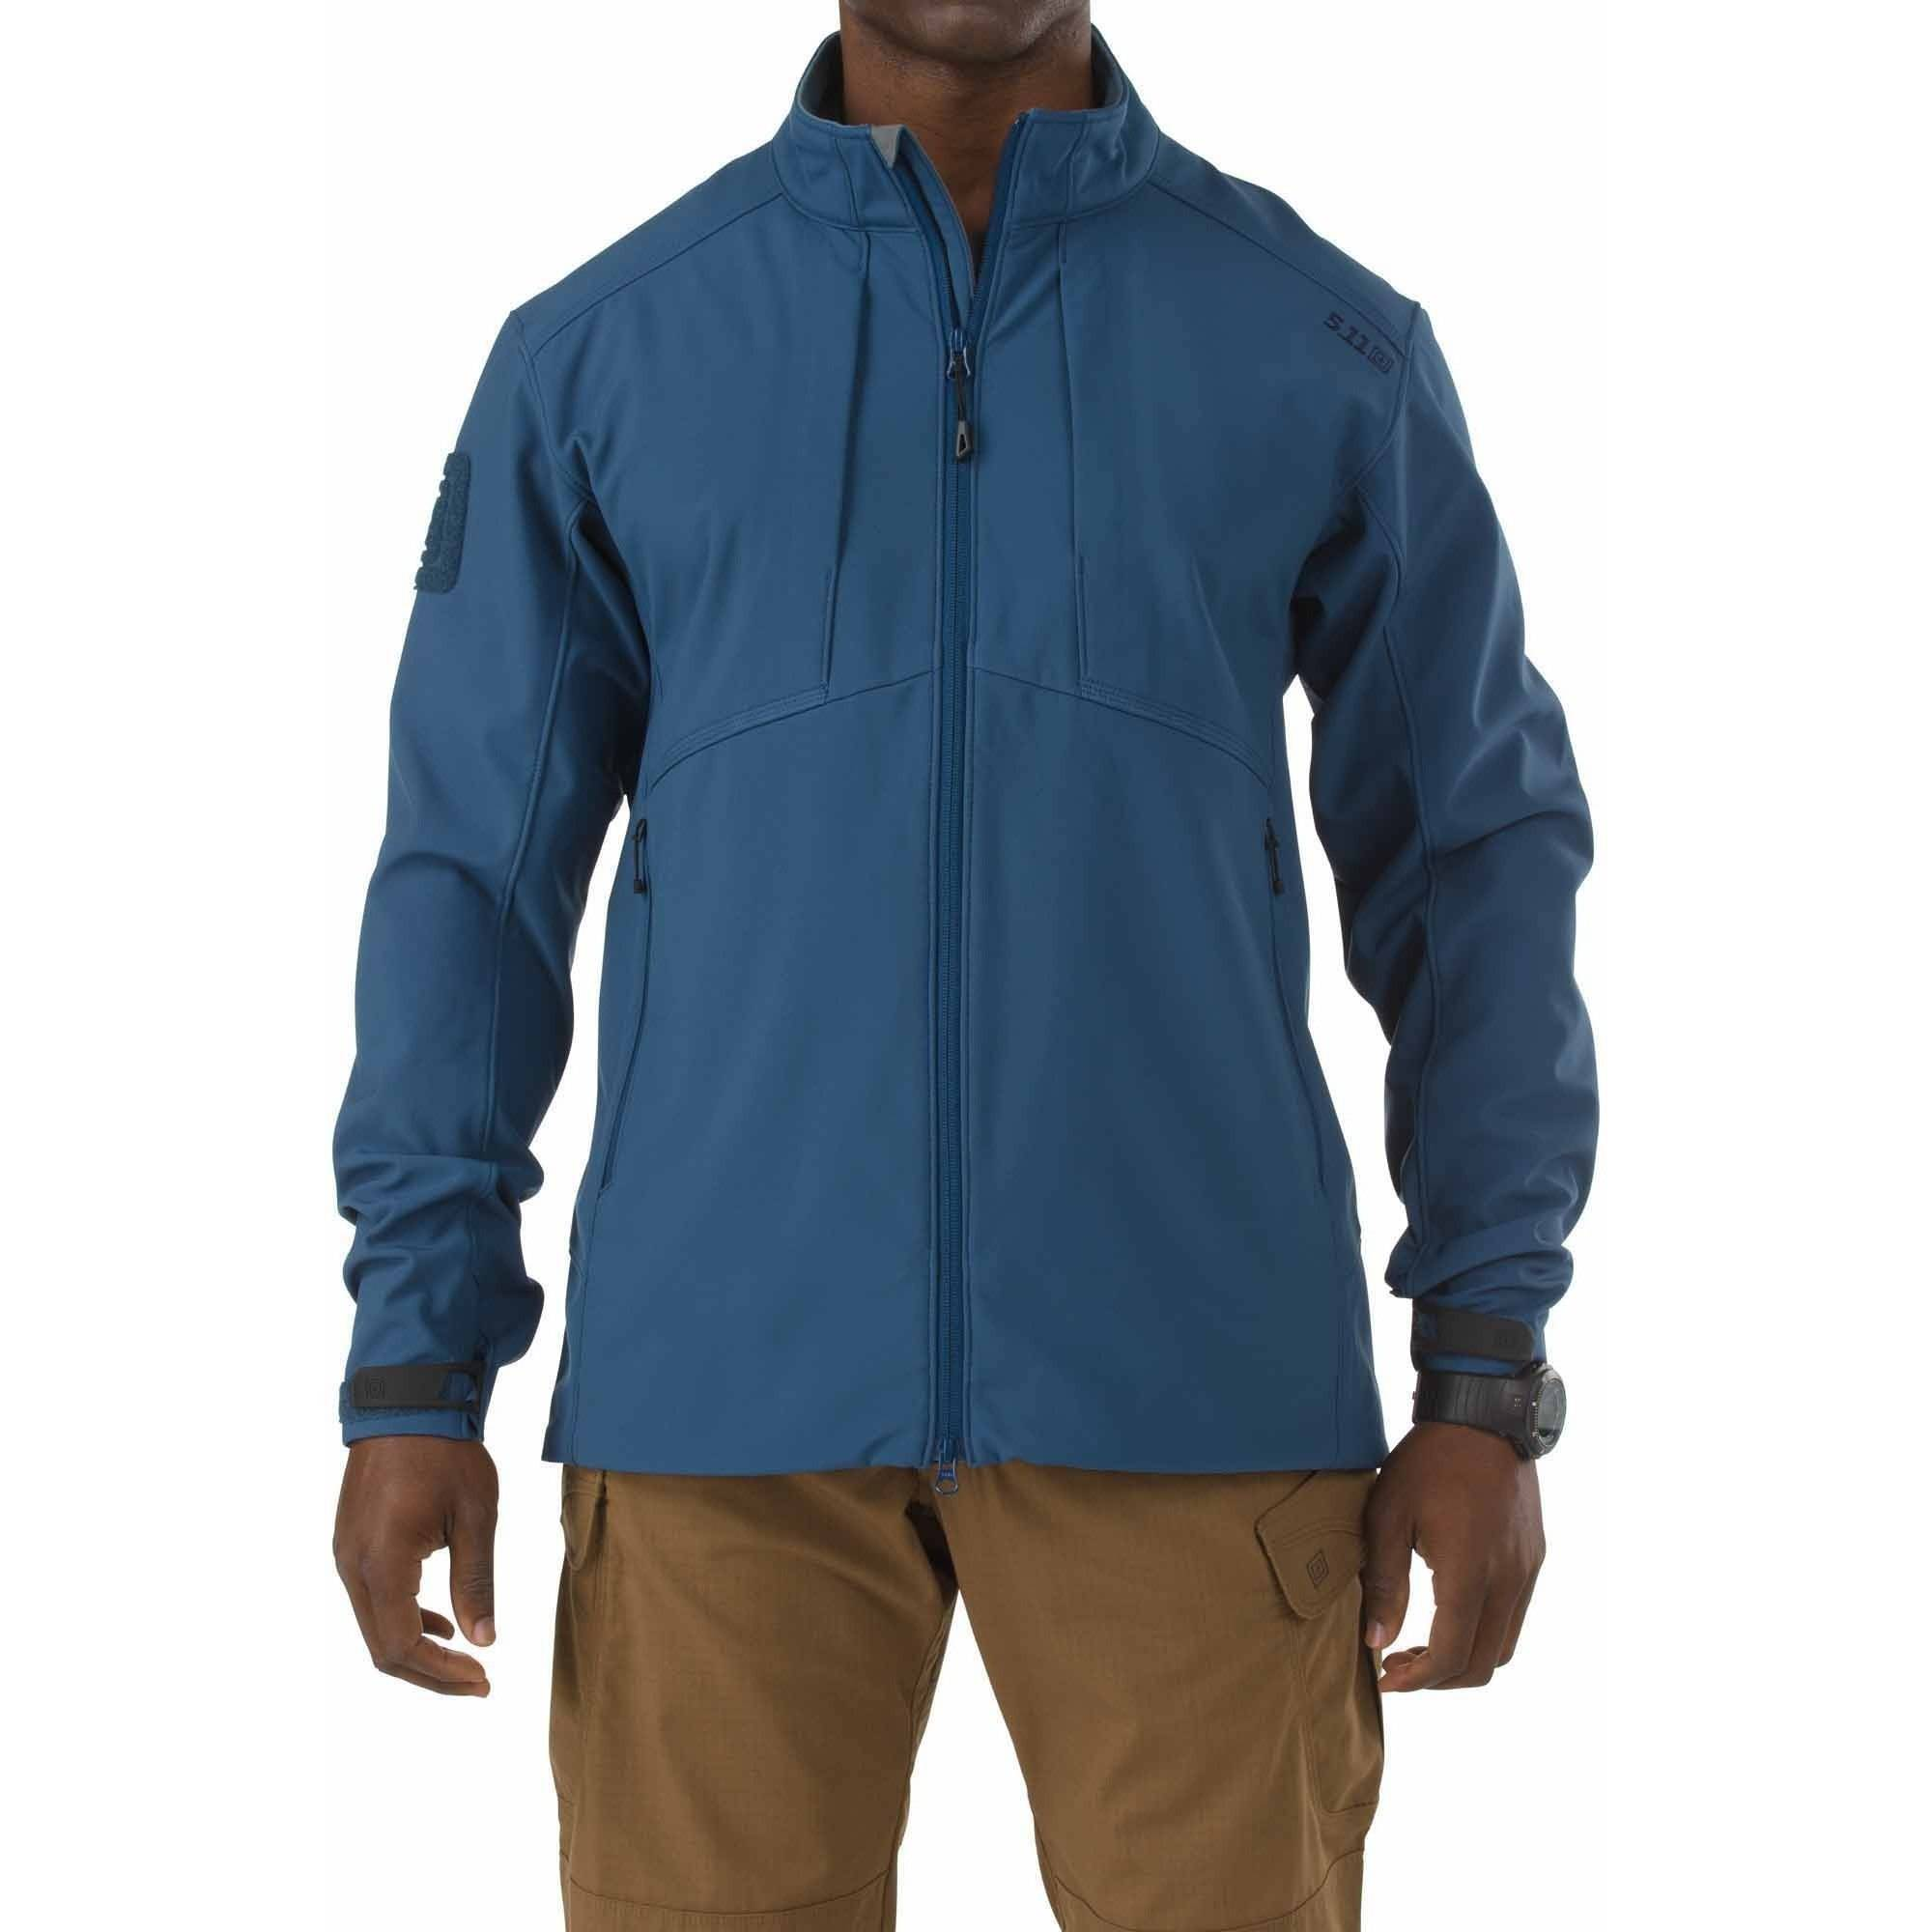 Sierra Softshell Jacket, Regatta by 5.11 Tactical